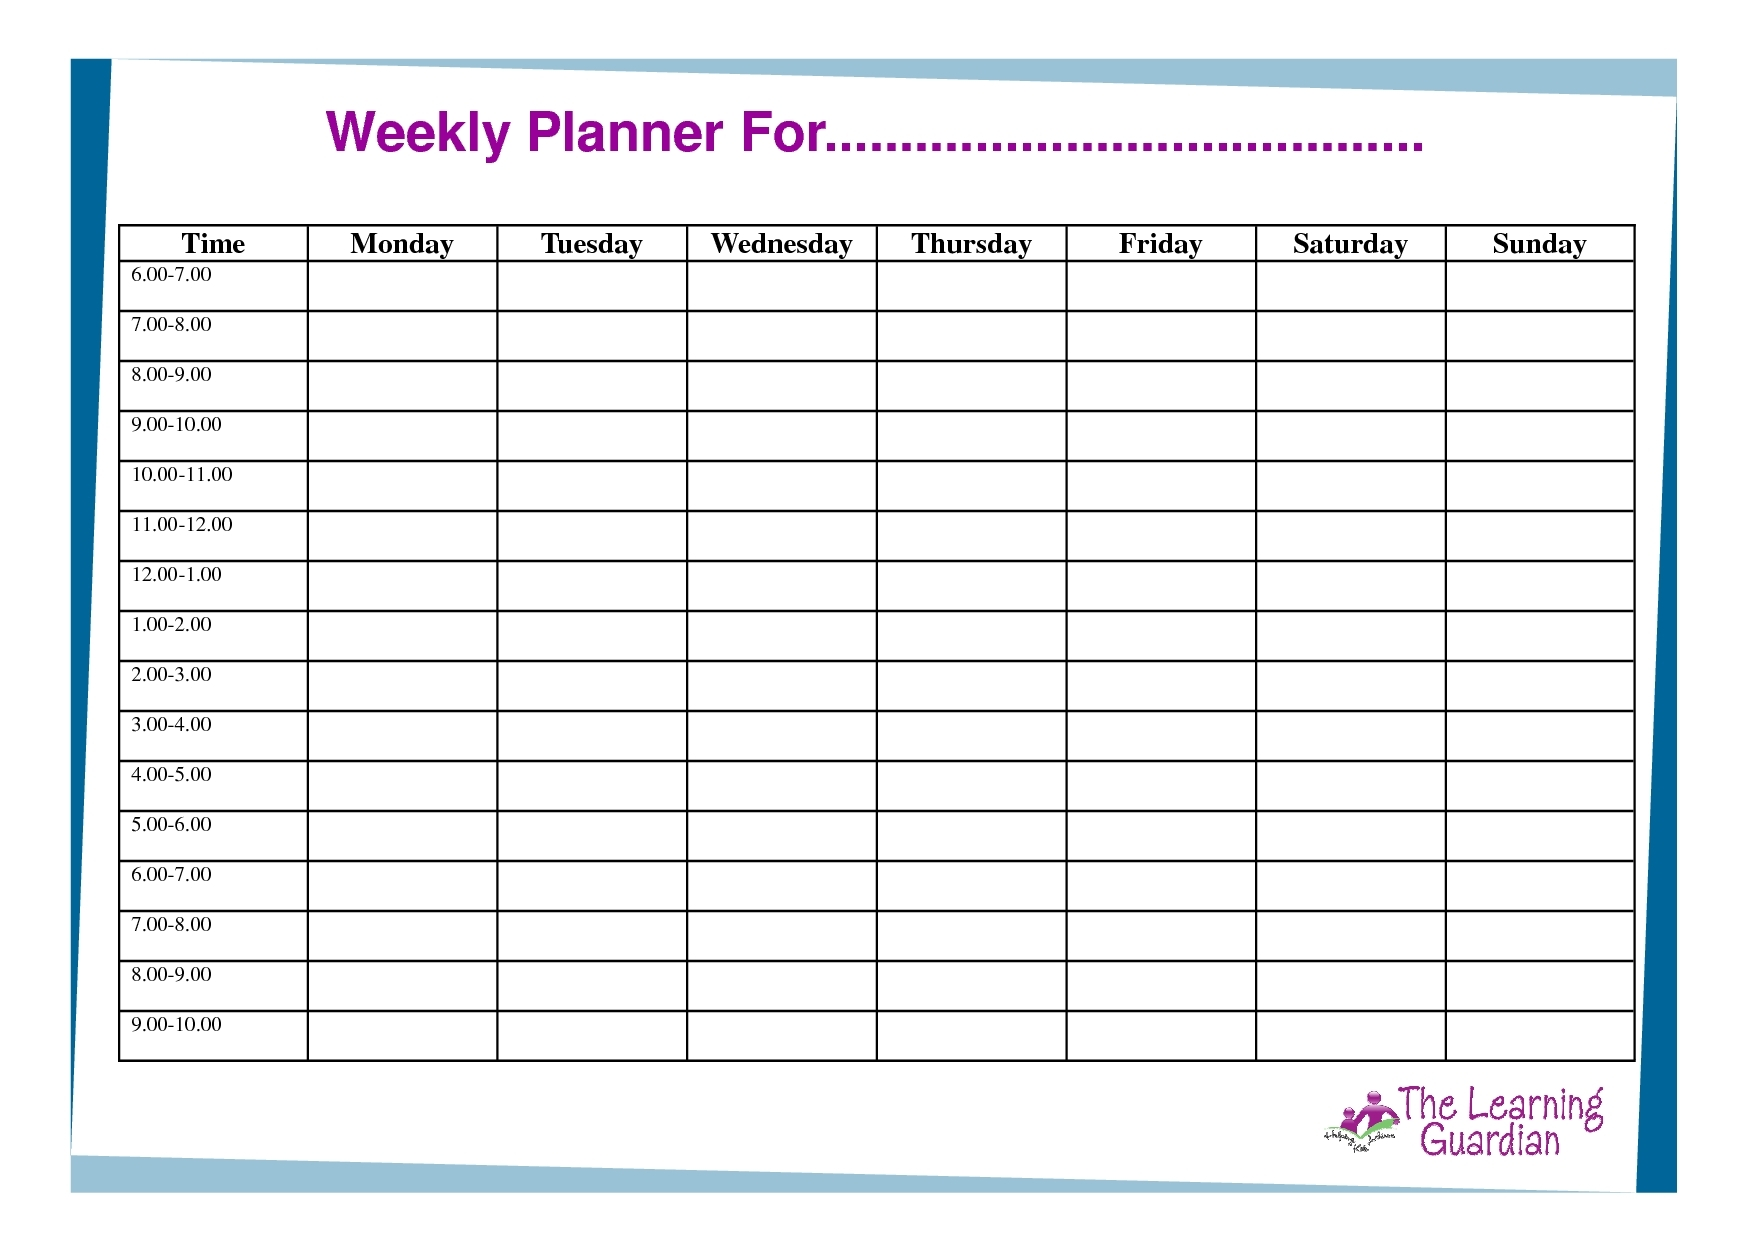 Free Printable Weekly Calendar Templates | Weekly Planner For Time  Blank Week Calender With Times